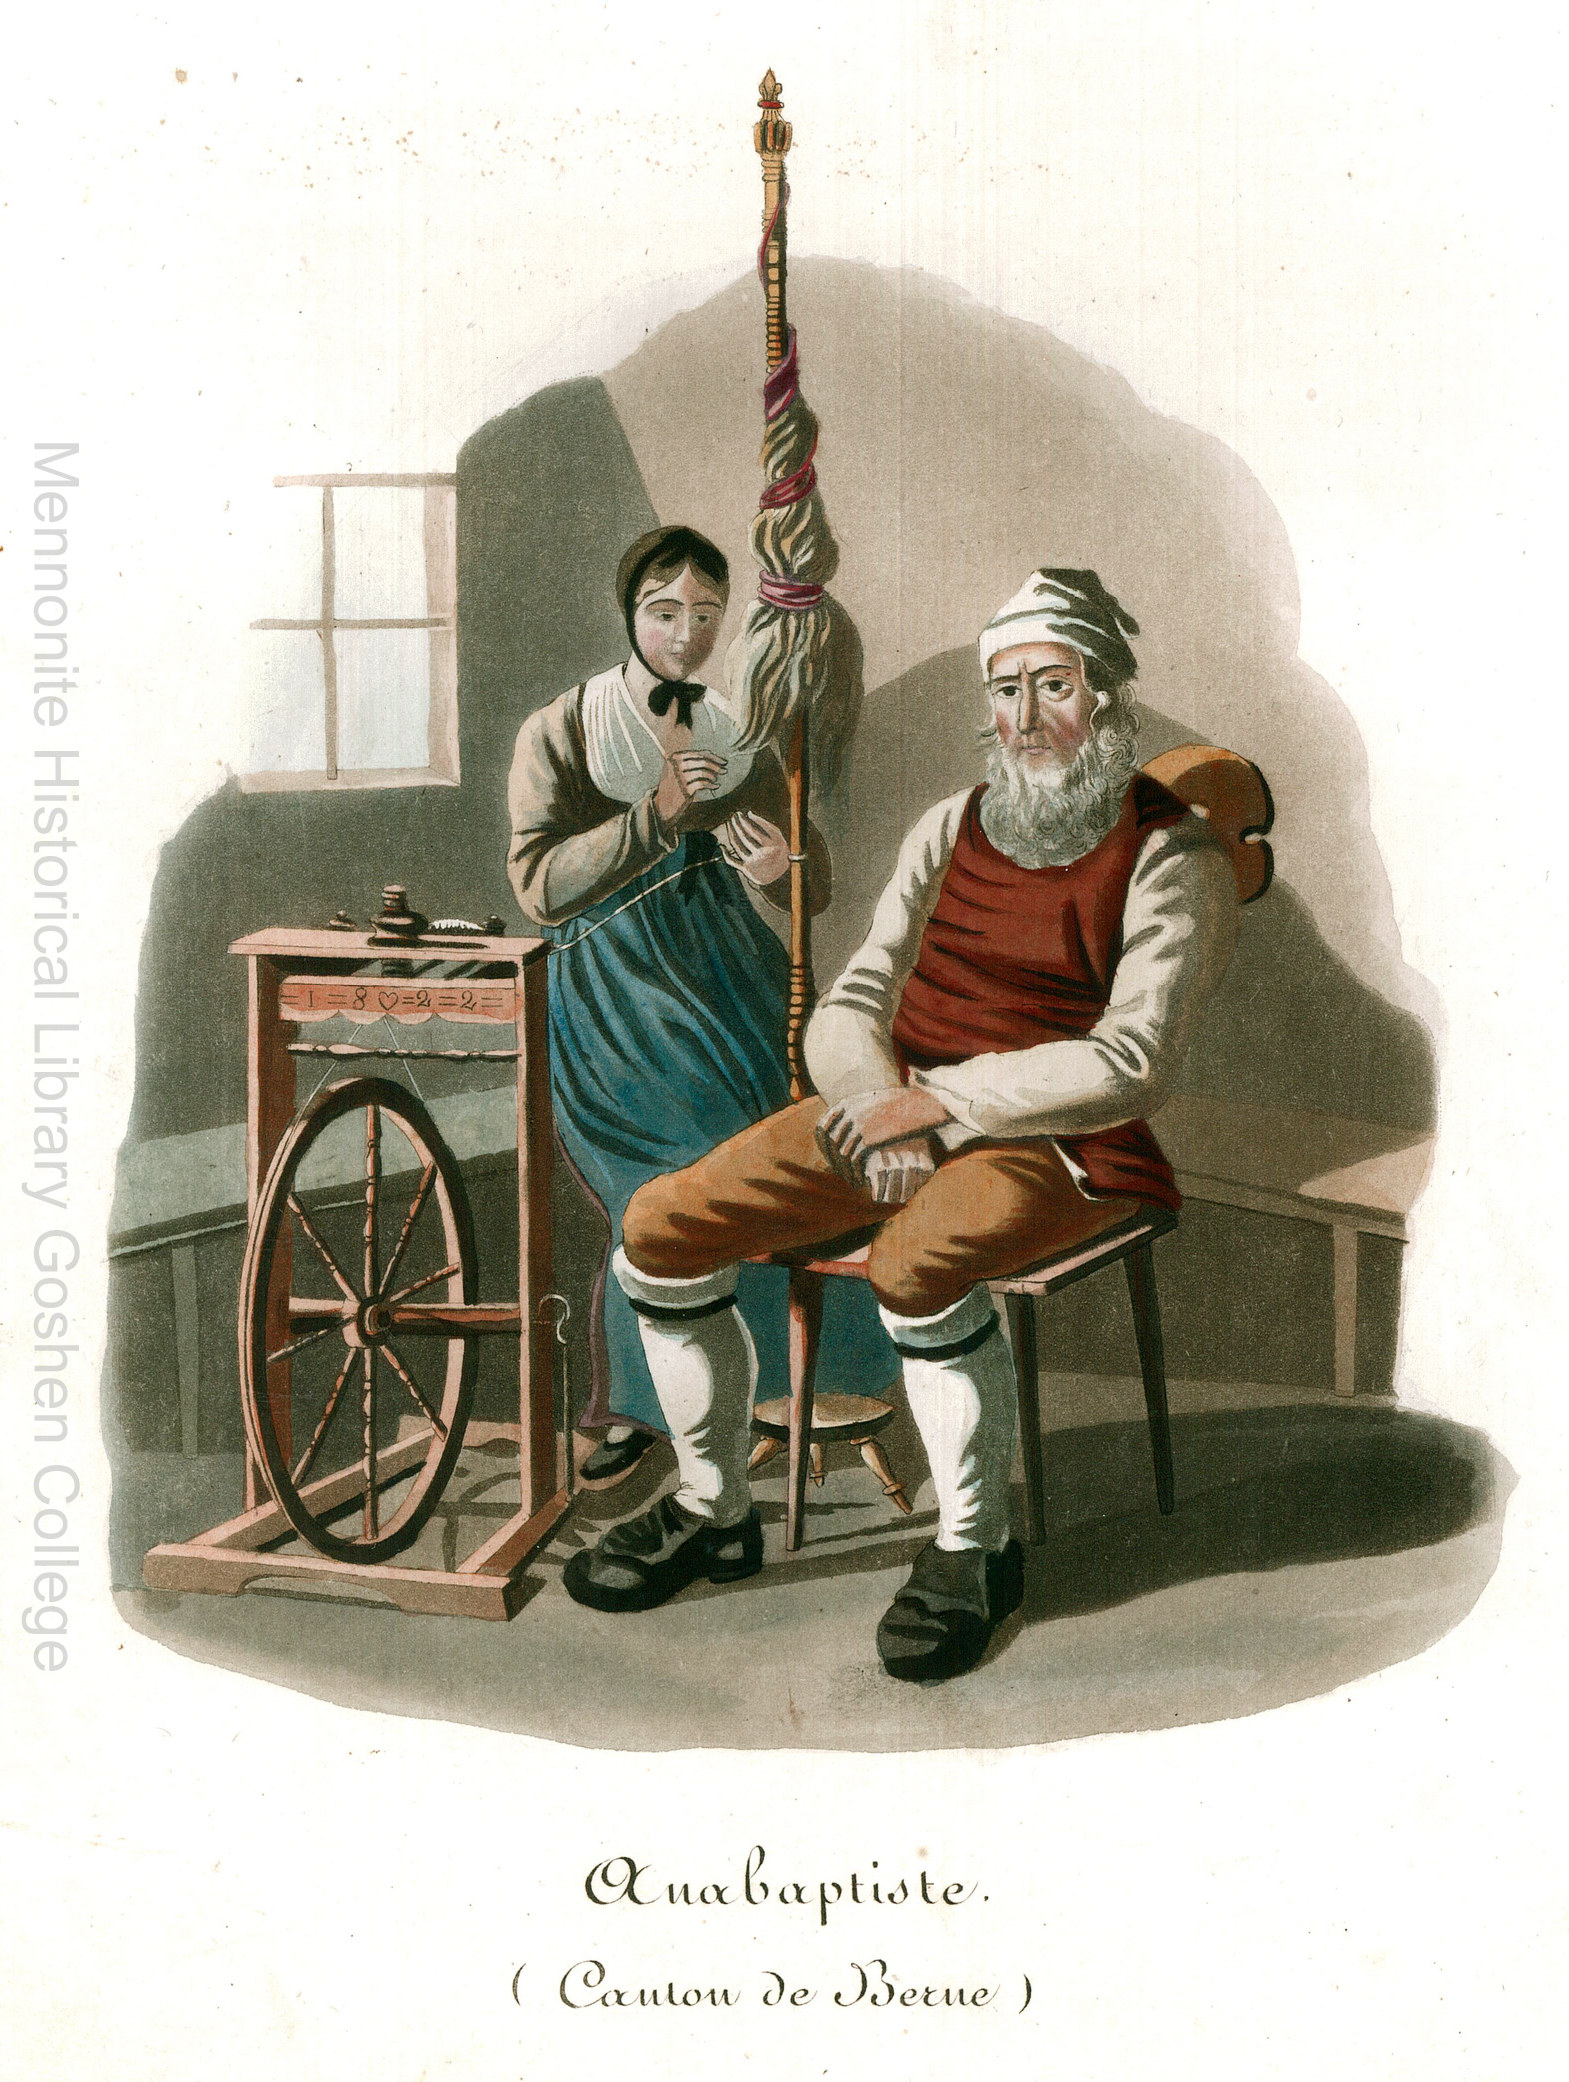 """Illustration from a book featuring two people in """"Anabaptist"""" clothing"""